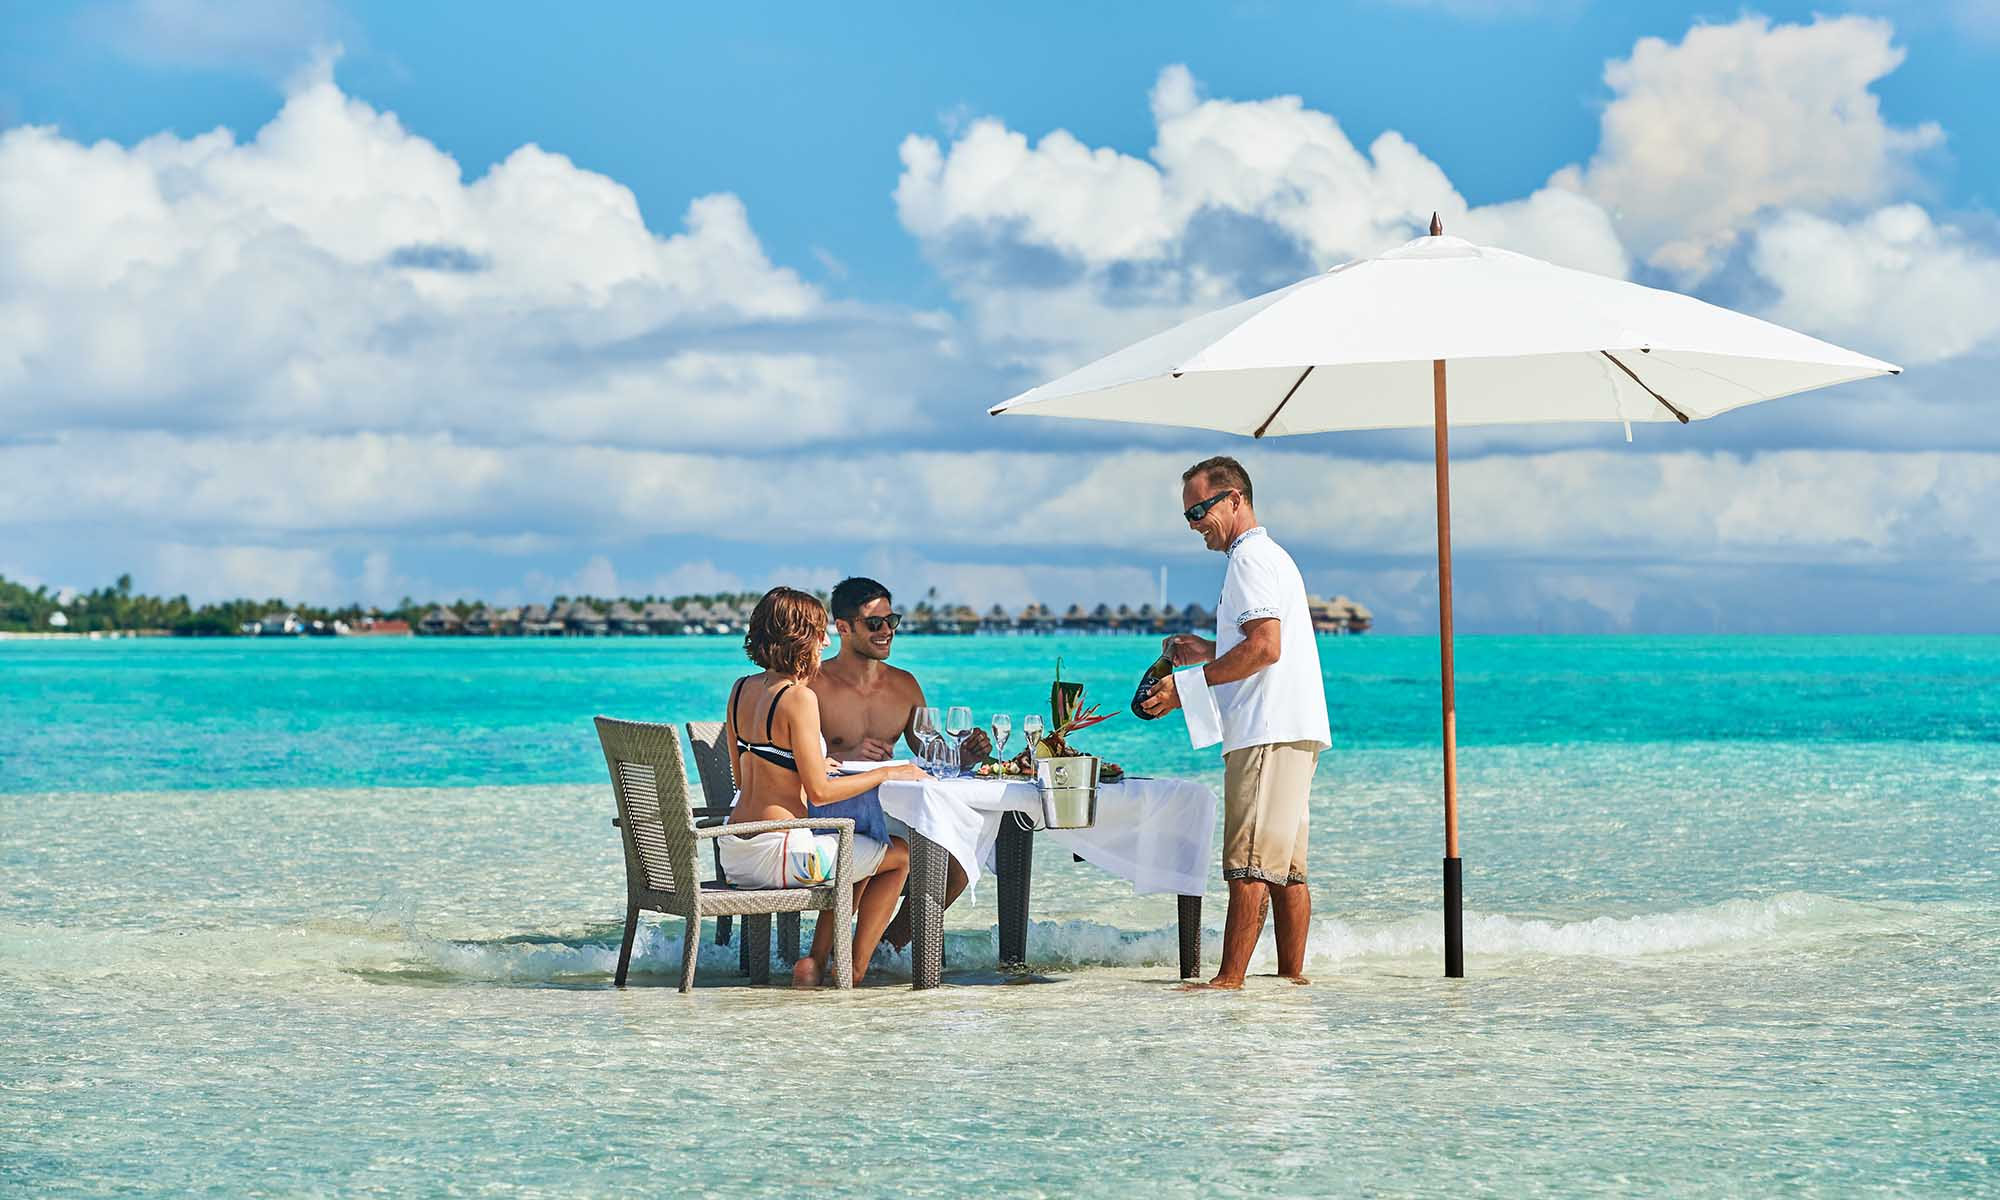 Conrad Bora Bora Nui, Lunch in the Water on a Private Motu